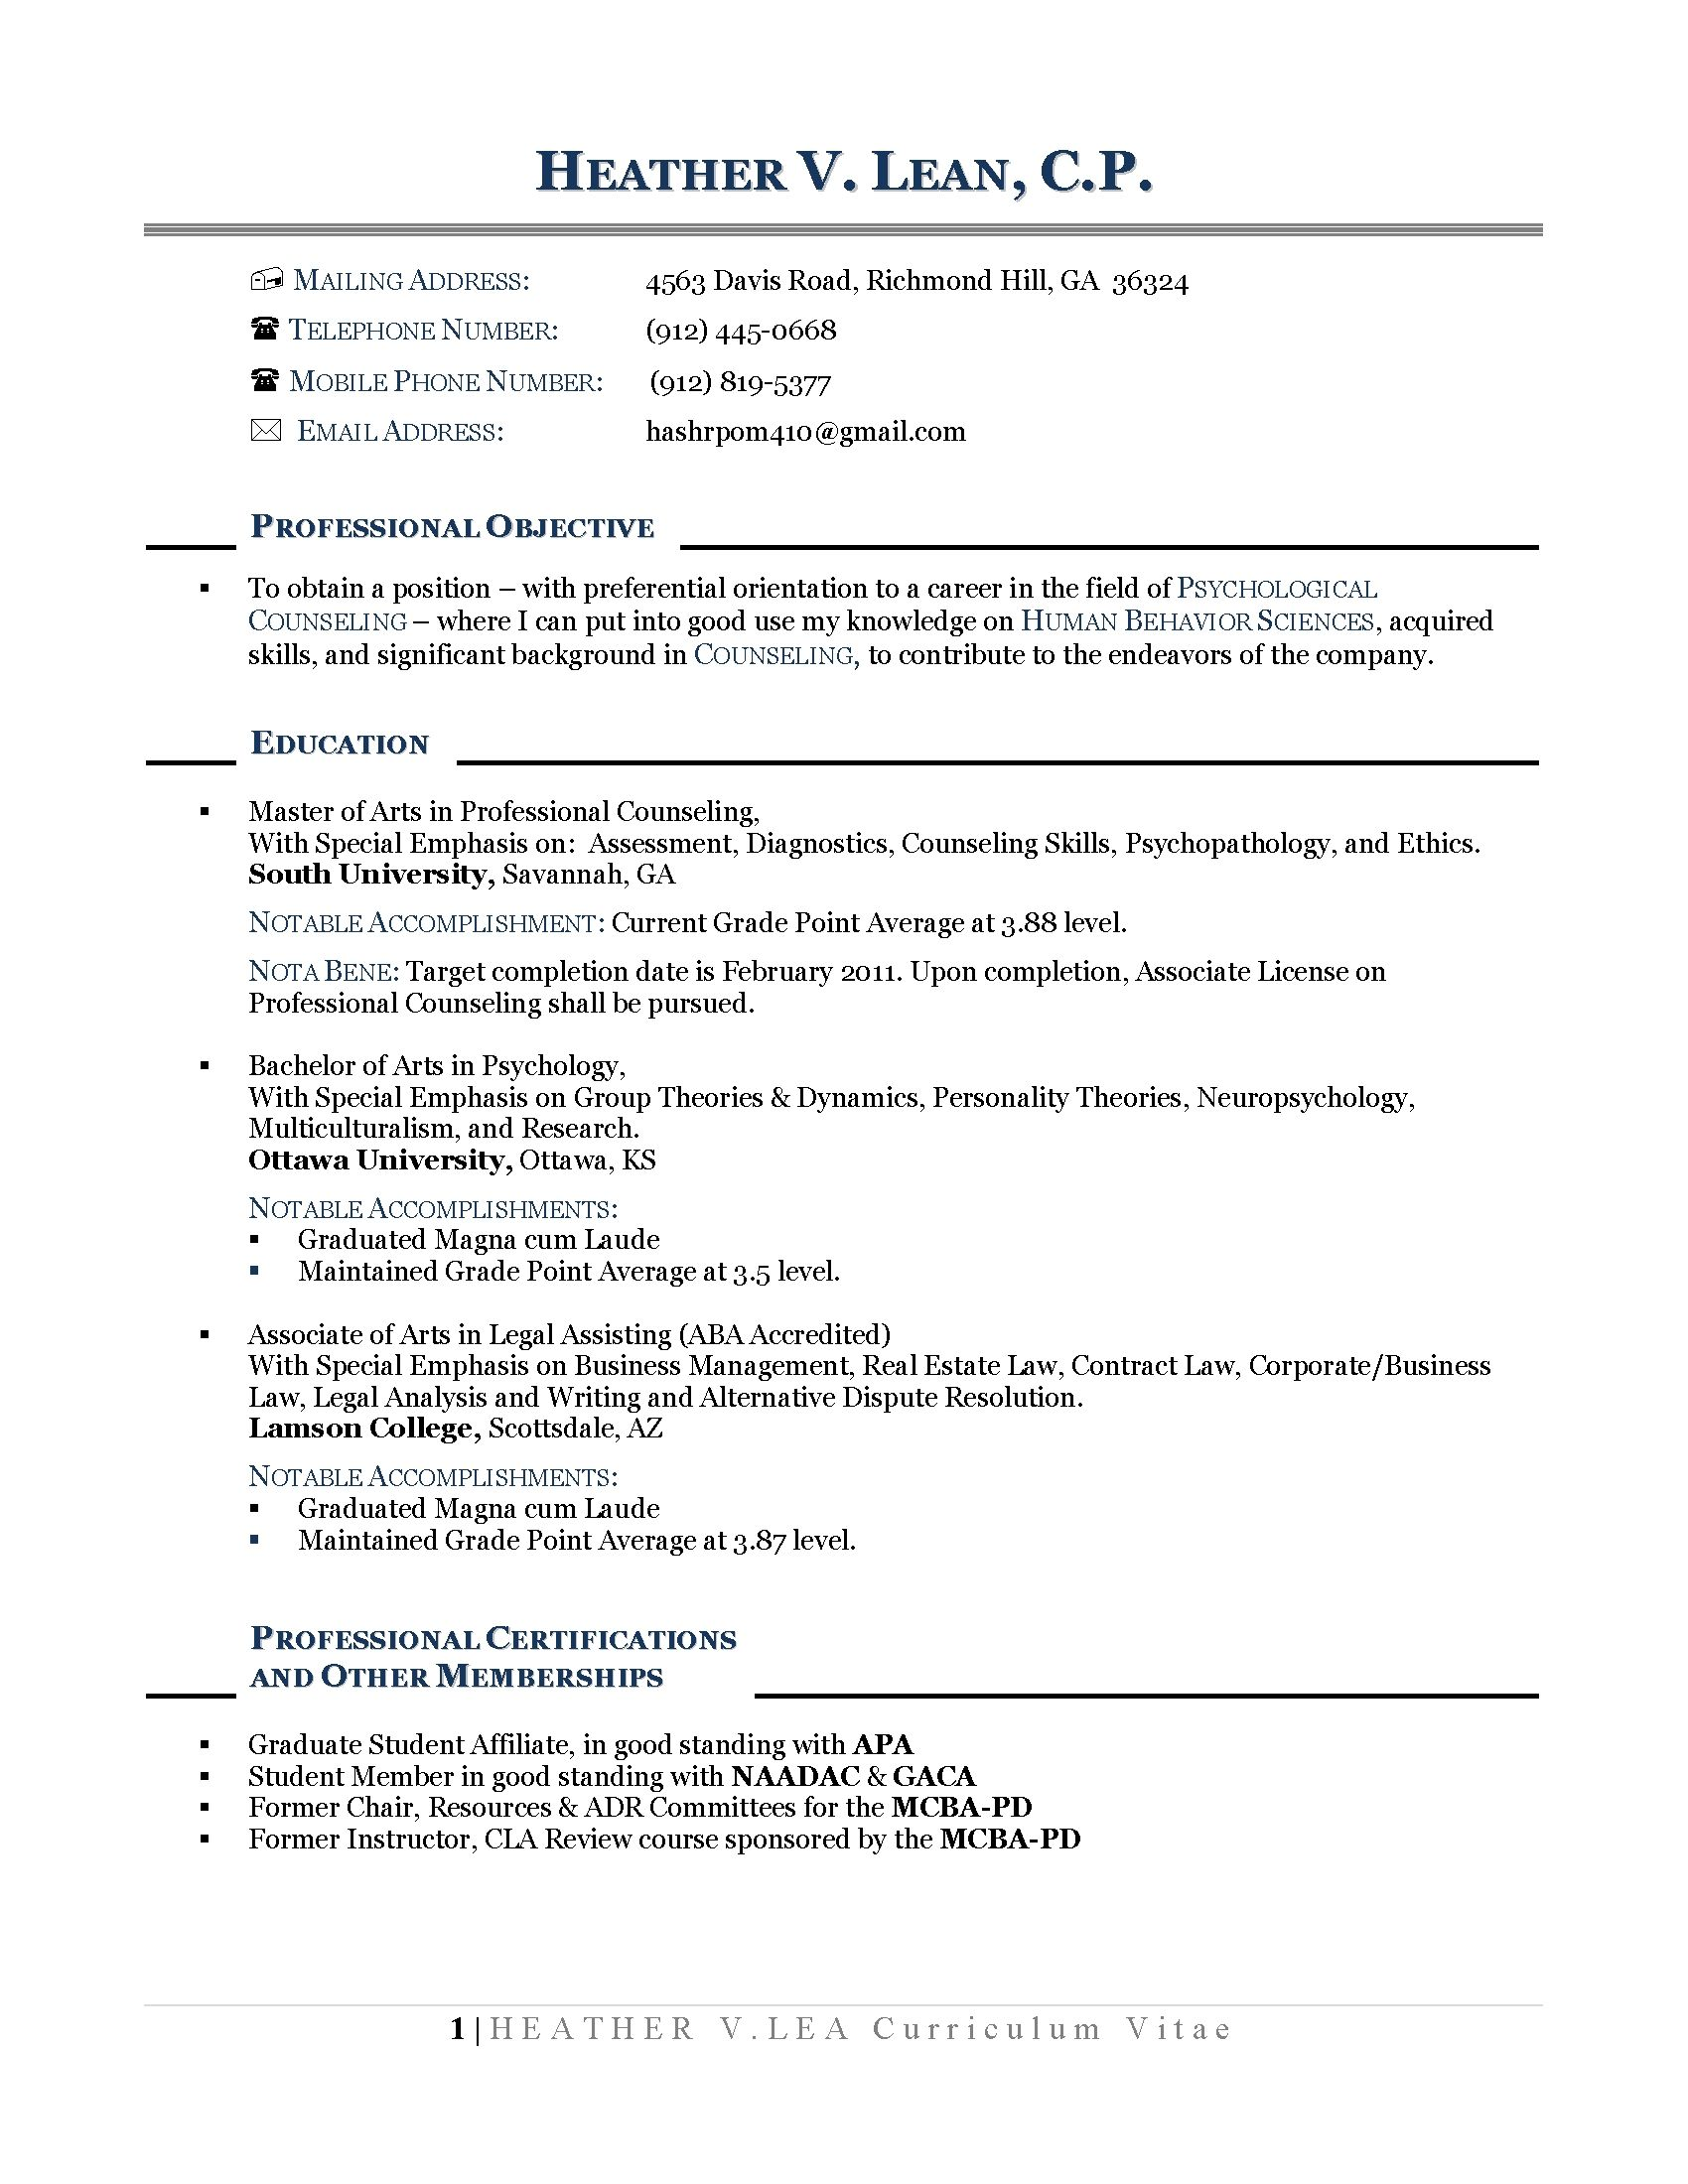 Psychological Associate Sample Resume Resume Examples Career Change  Pinterest  Resume Examples And Change